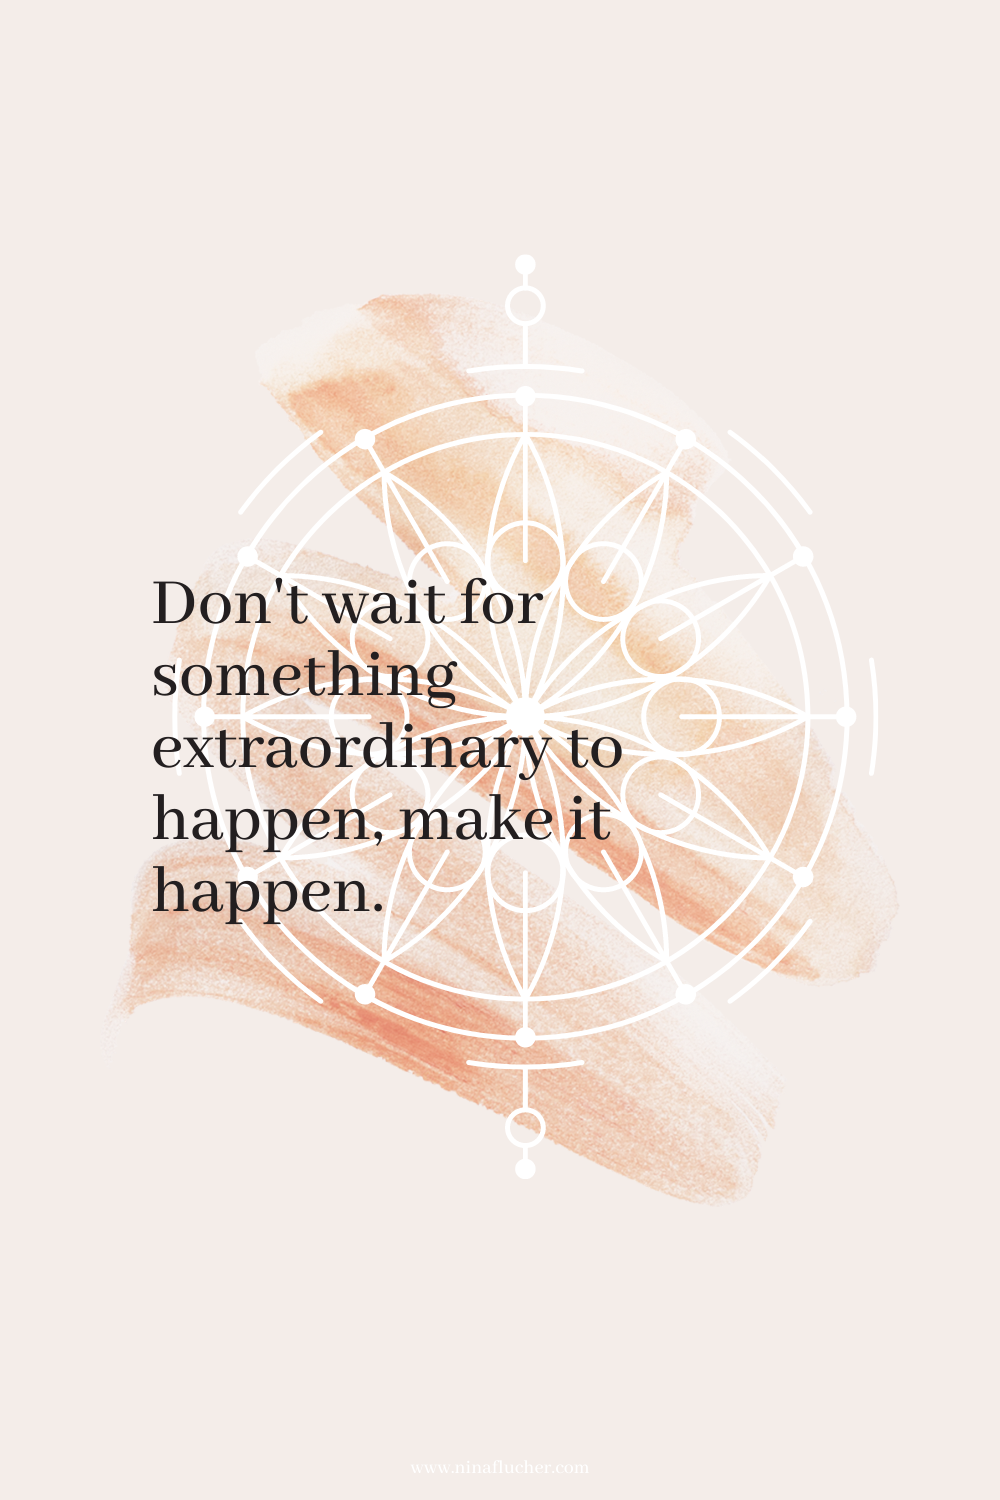 Don't wait for something extraordinary to happen, make it happen.